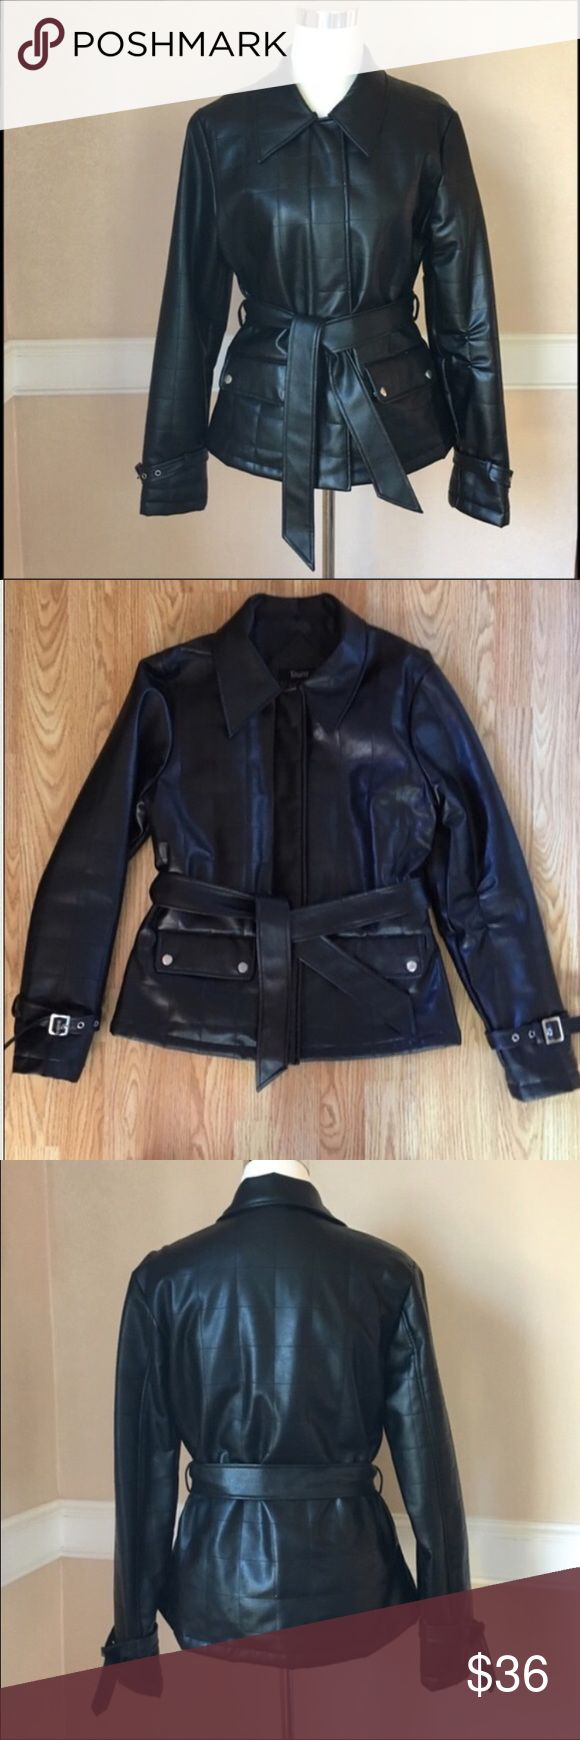 """Belted Faux leather jacket Women's black faux leather jacket. Quilt and stitch pattern. Zip-up with top and bottom snap closures. Detachable leather belt, 2 side snap pockets, adjustable silver metal buckles on sleeves for a perfect fit and added style. Approx. Measurements laying flat: length: 25"""" waist: 17.5"""" pit to pit: 19.5"""" Excellent condition Jackets & Coats"""